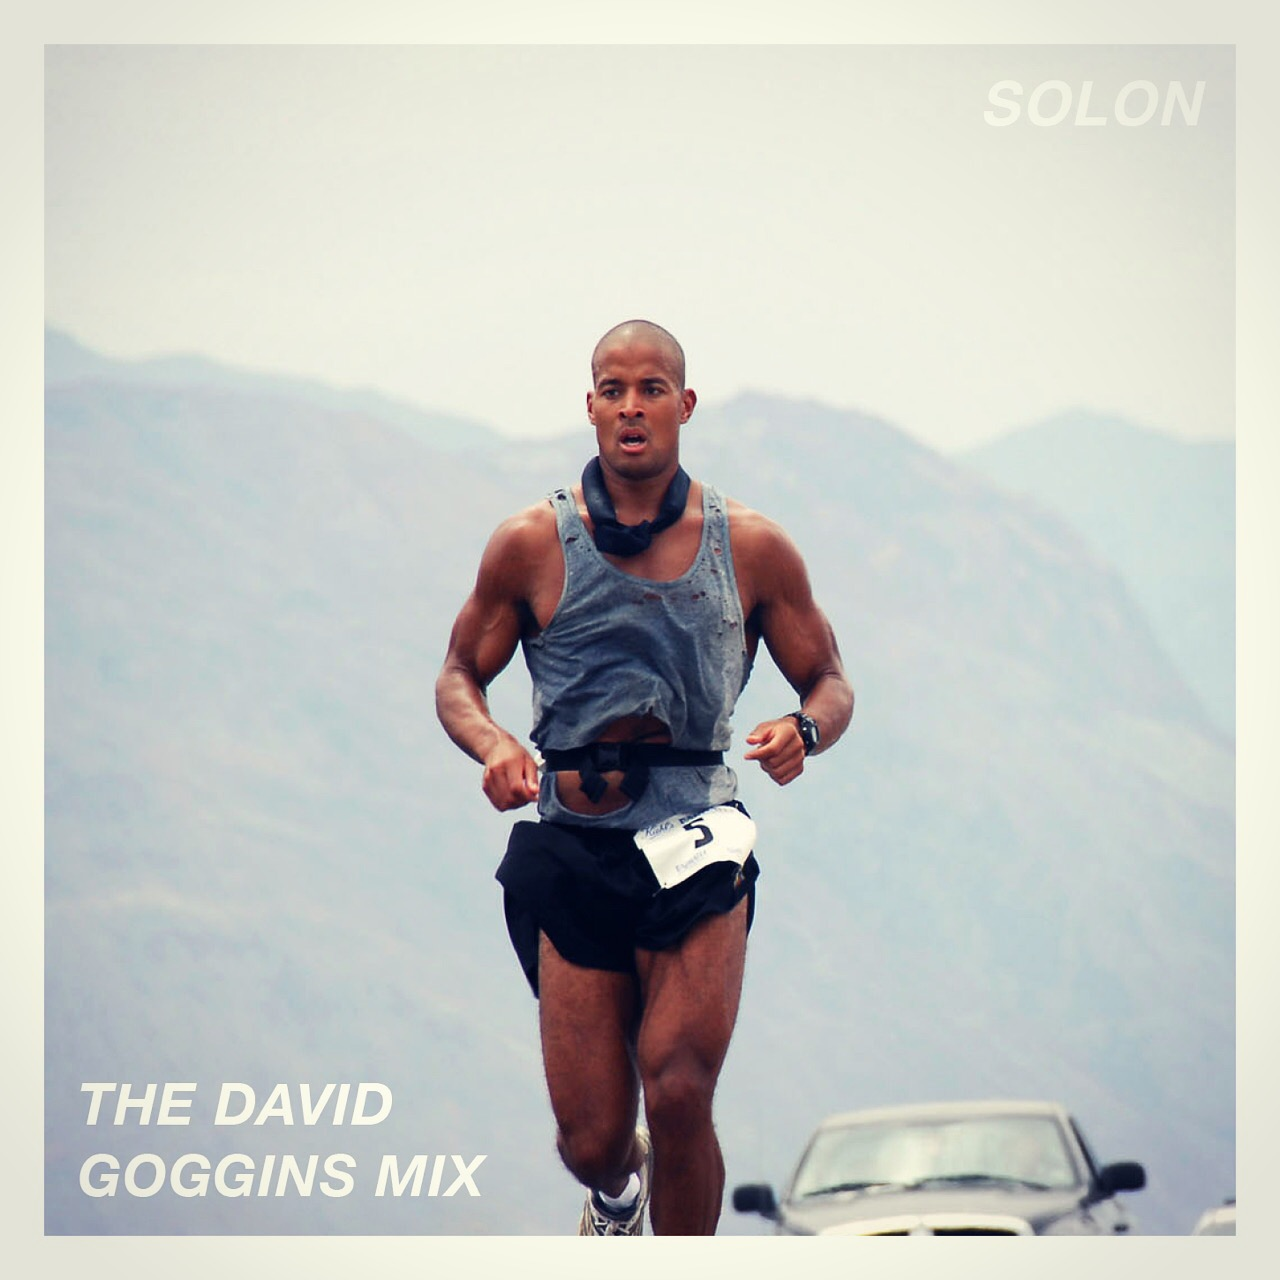 SOLON Goggins Mix Cover Art with border 1450px post Instagram 45 xpro2.jpg